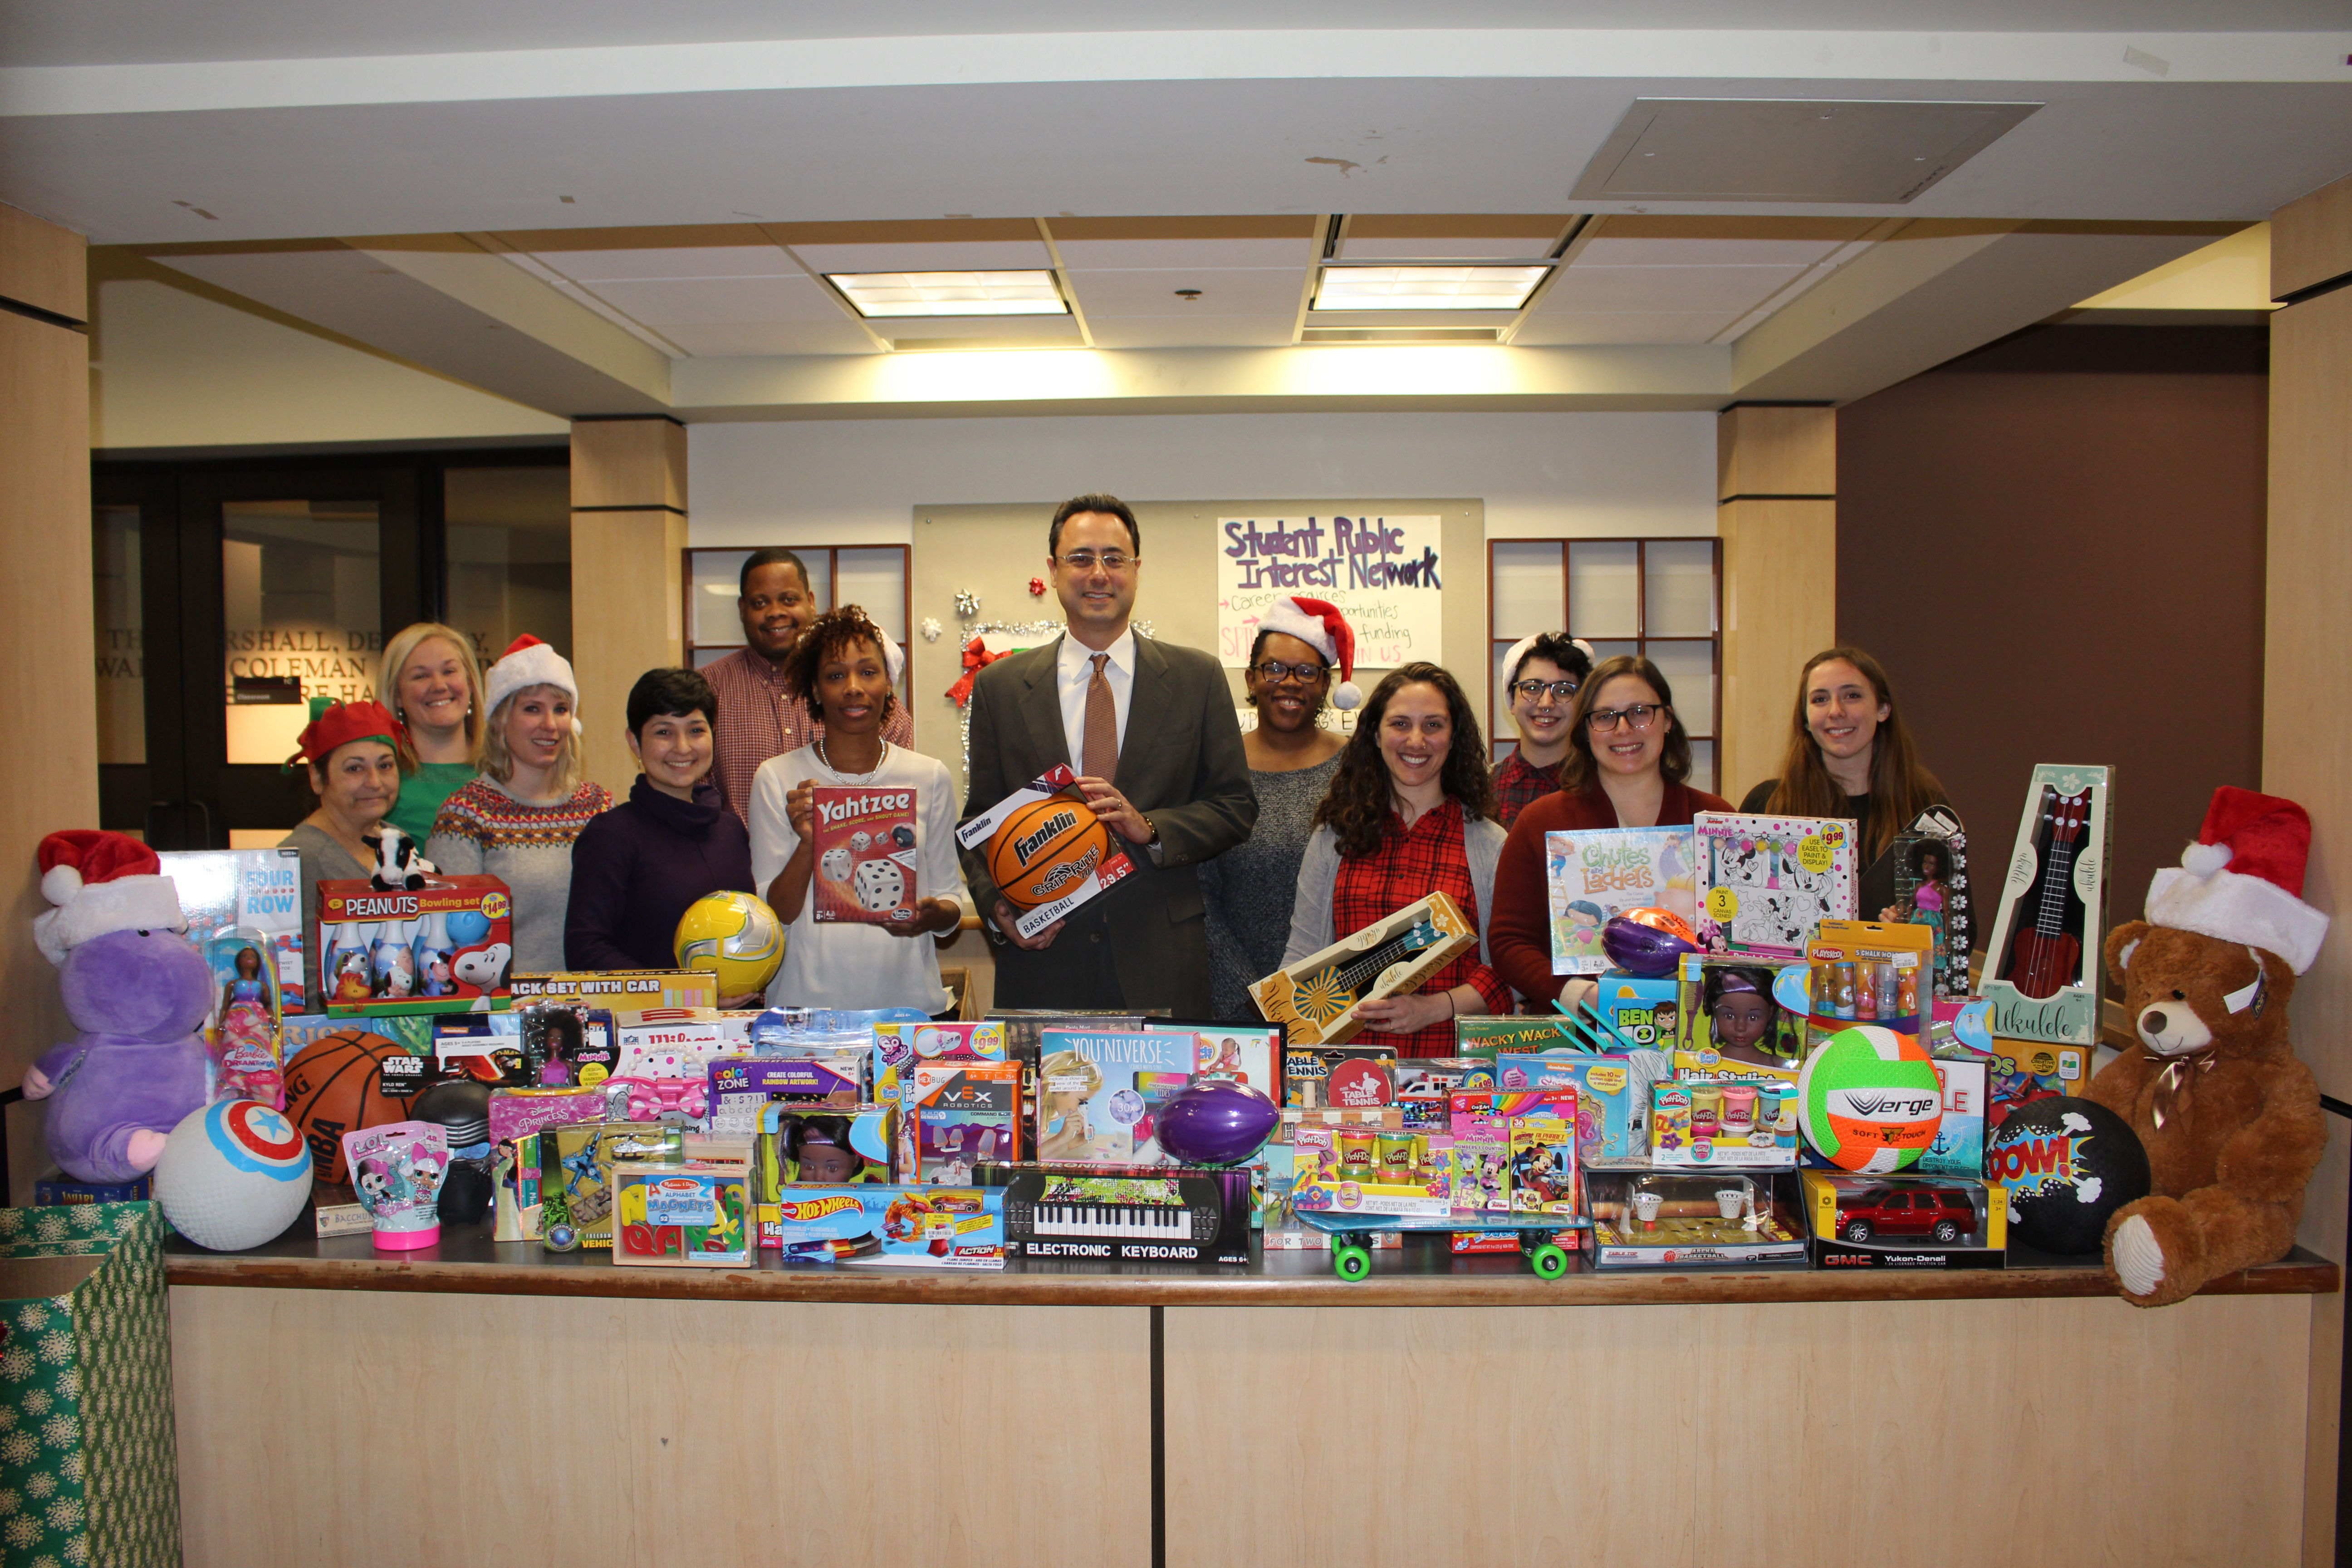 The annual winter Toy Drive, hosted by the Student Public Interest Network (SPIN) organization, always bring the Temple Law community together.